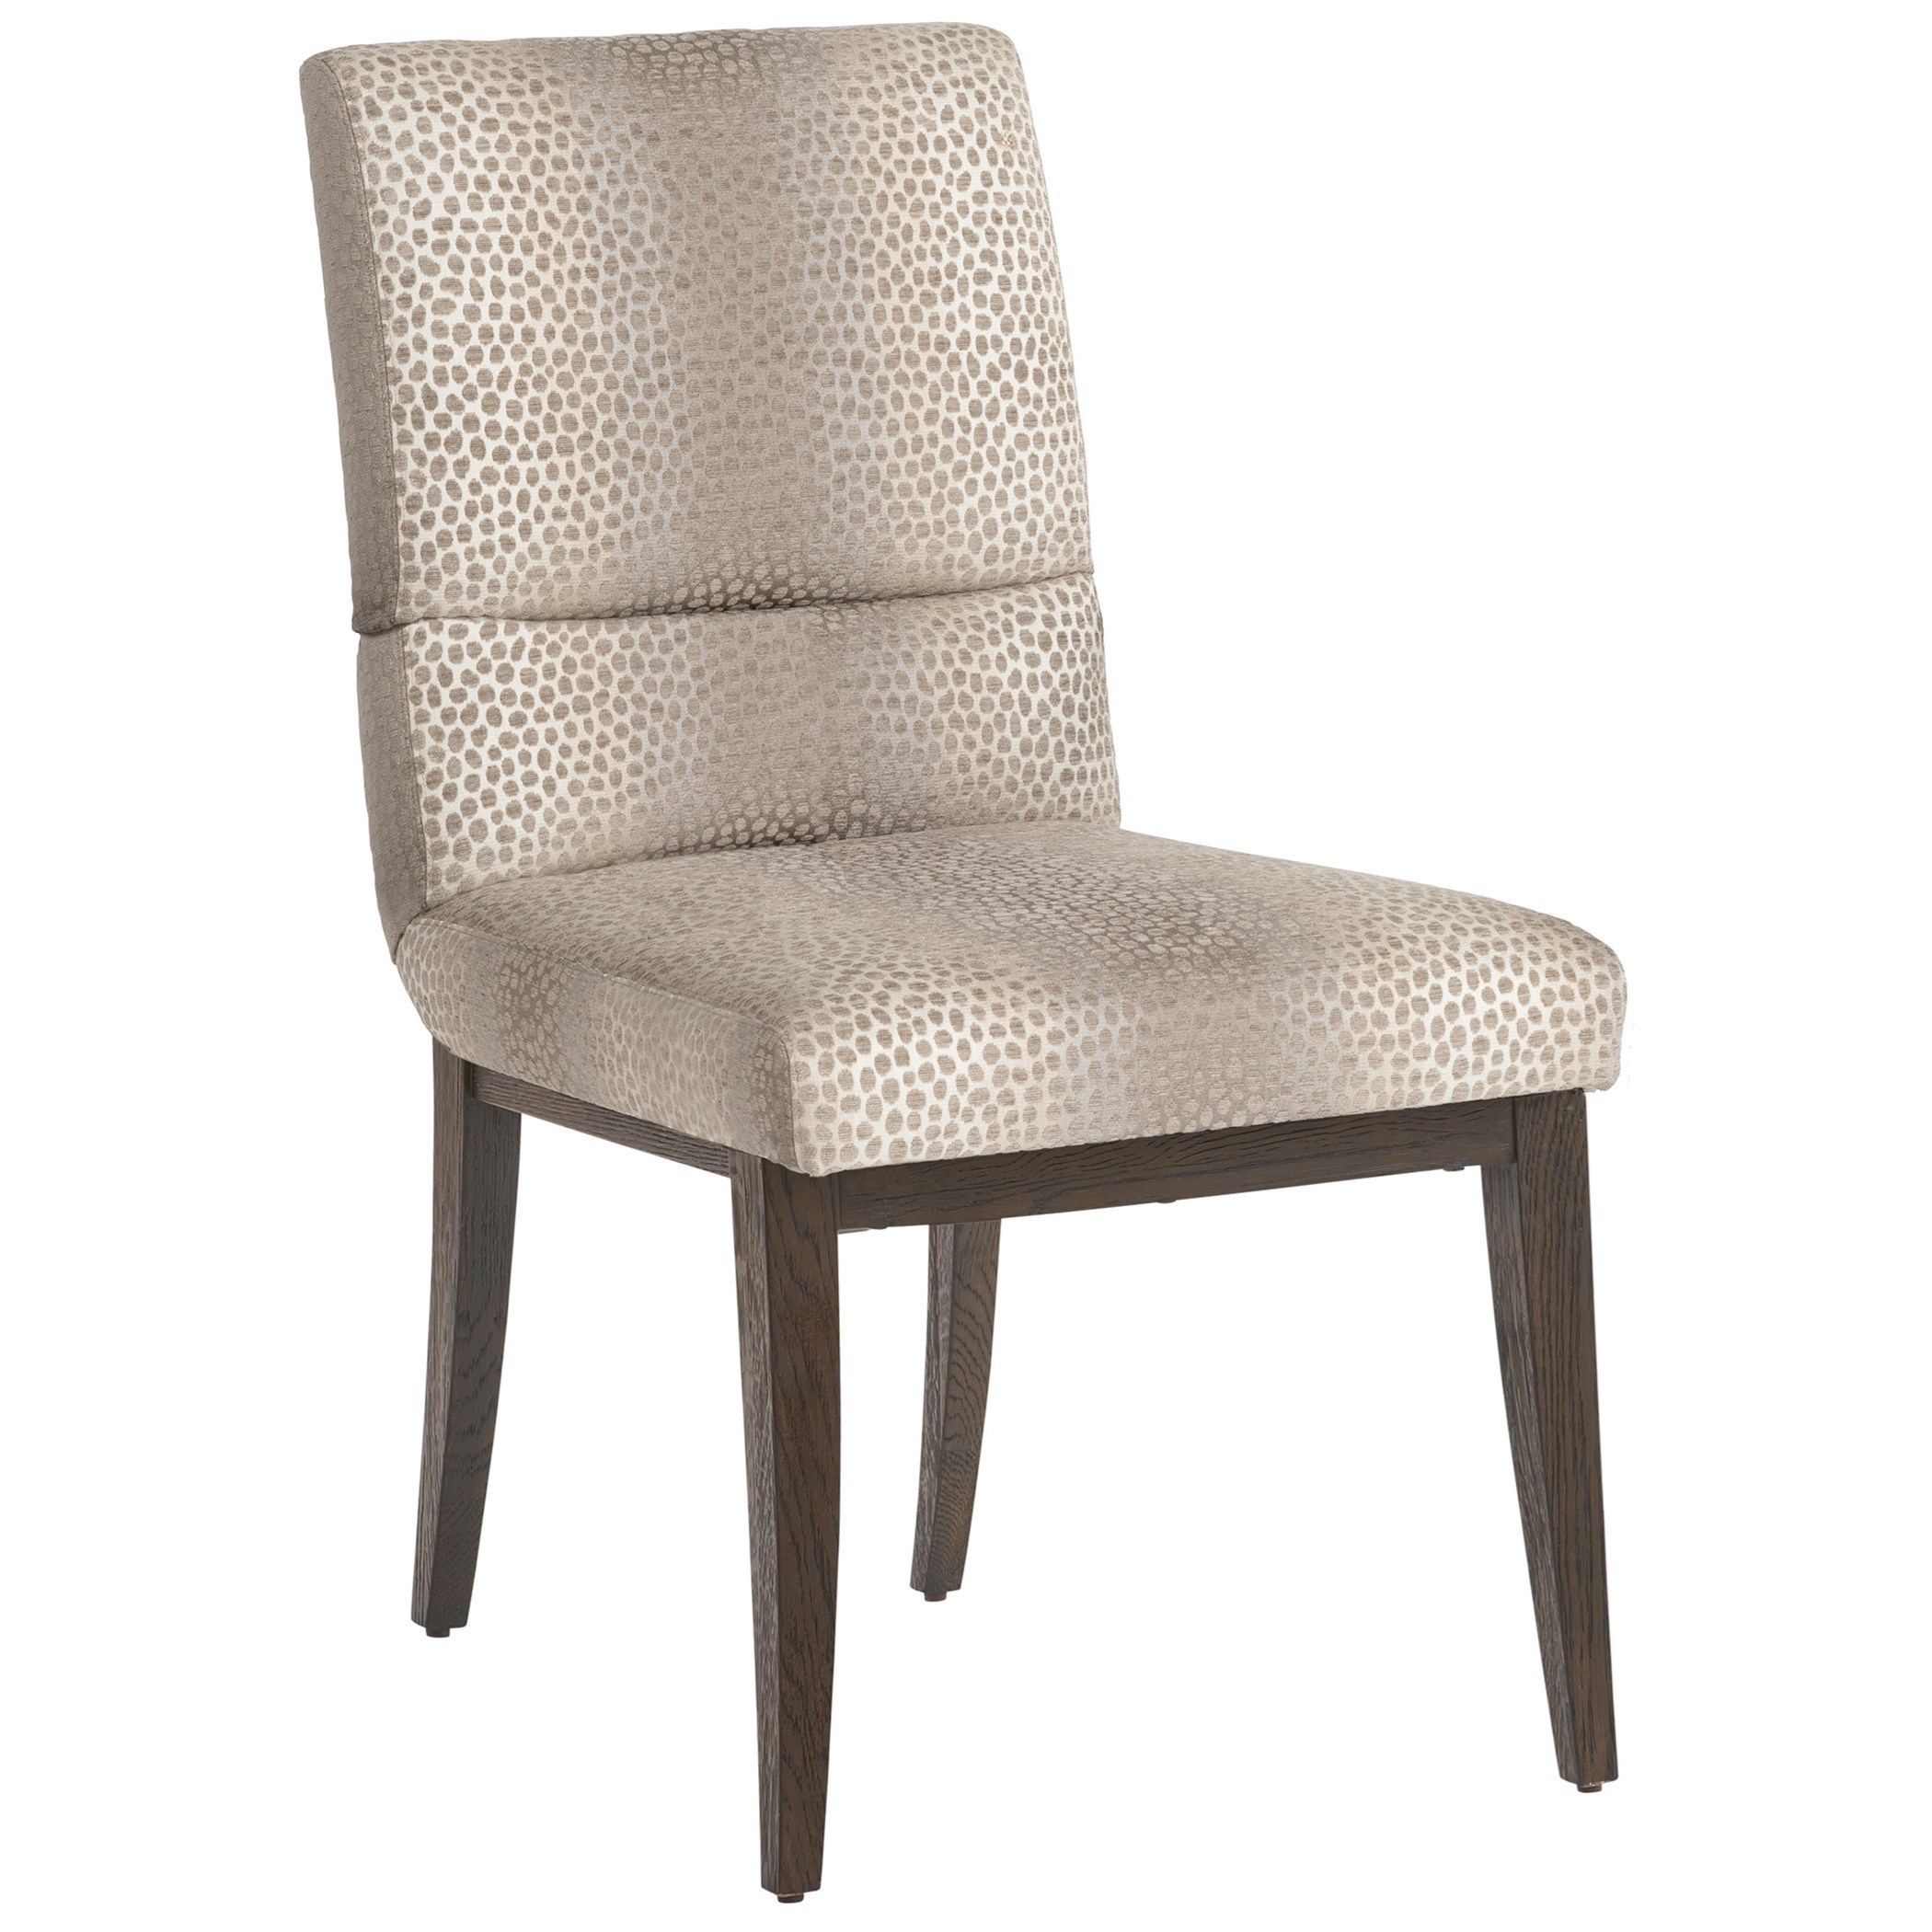 Park City Glenwild Customizable Upholstered Side Chair by Barclay Butera at Baer's Furniture